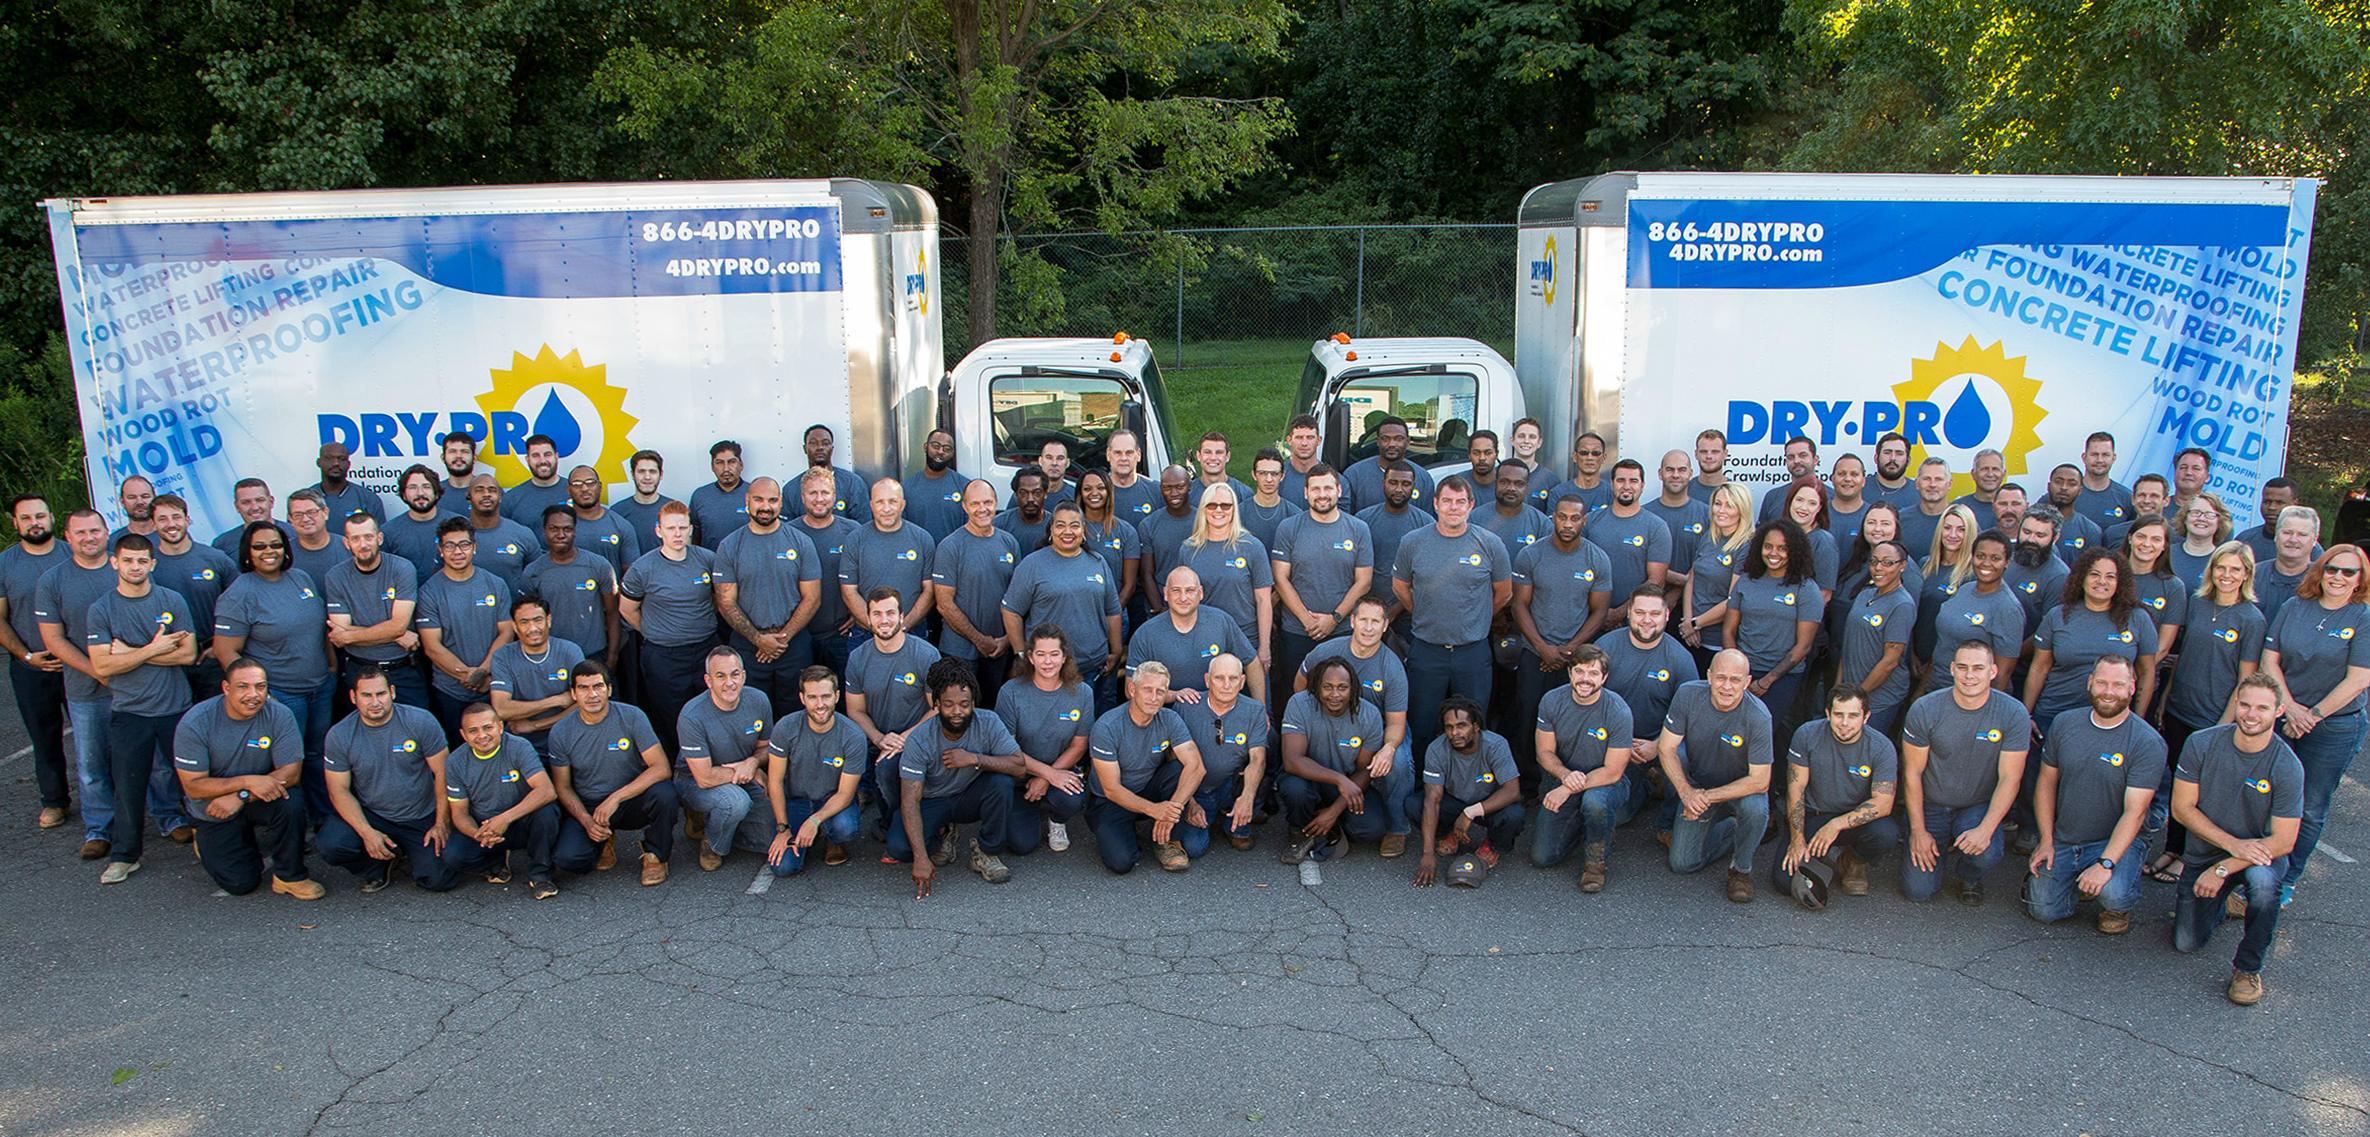 Meet Dry Pro Foundation and Crawlspace Specialists' Team